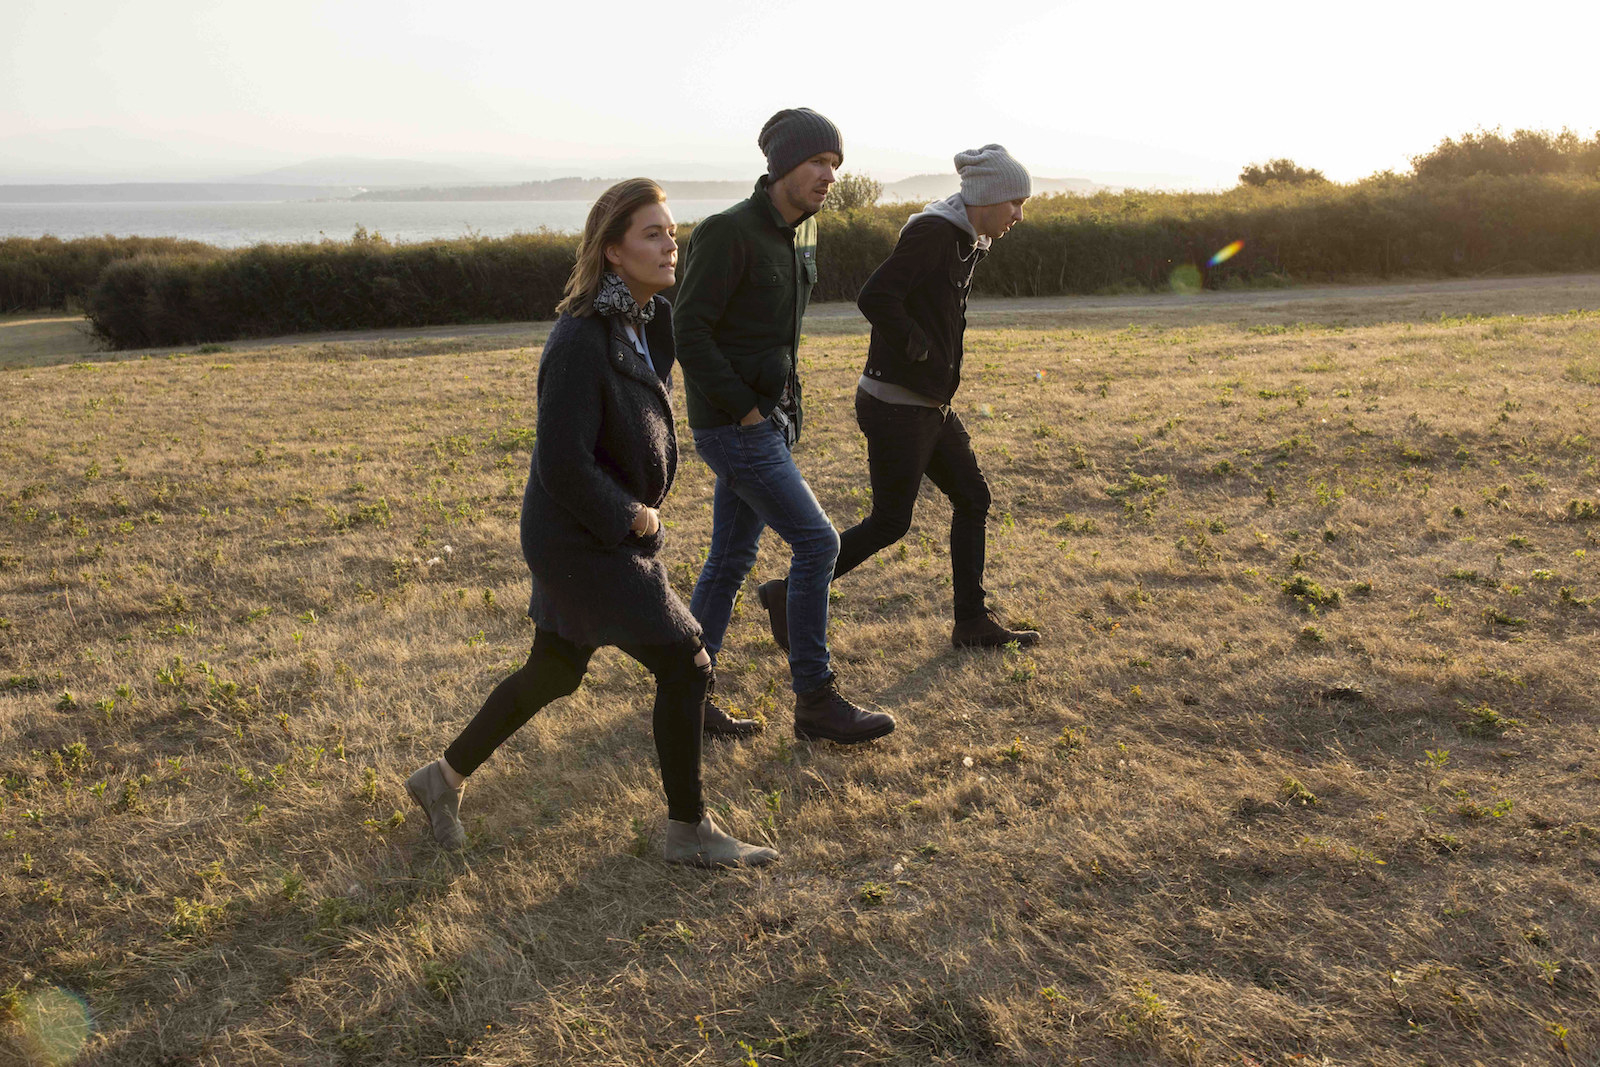 Brandi walks with two men in a field, all dressed in jeans and warm coats